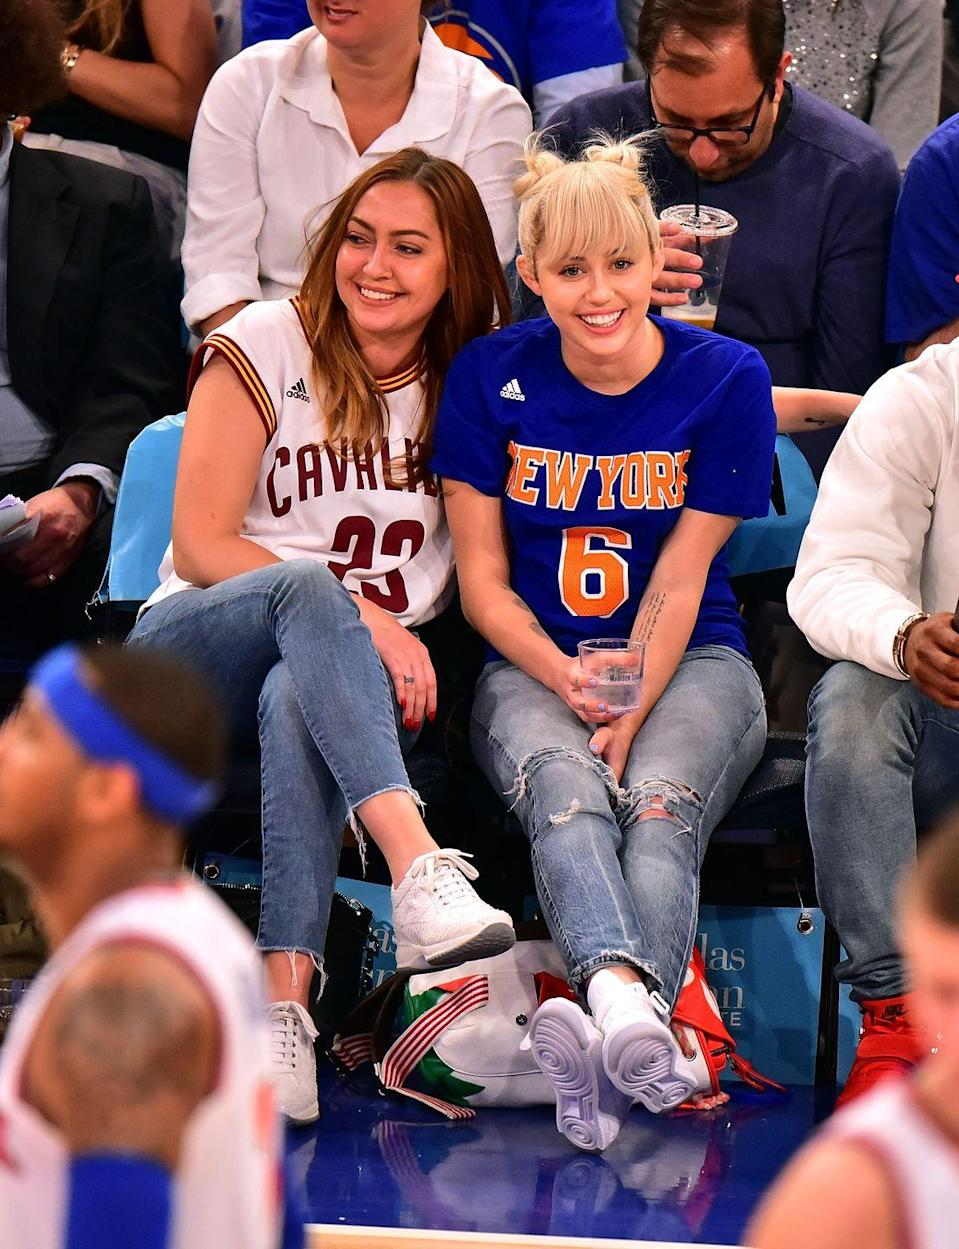 <p>Brandi and Miley Cyrus both grew up as celebrity off-spring — their dad is country singer, Billy Ray Cyrus — and they both followed him into the music industry. Not to mention, they have the same round faces and wide smiles.</p>